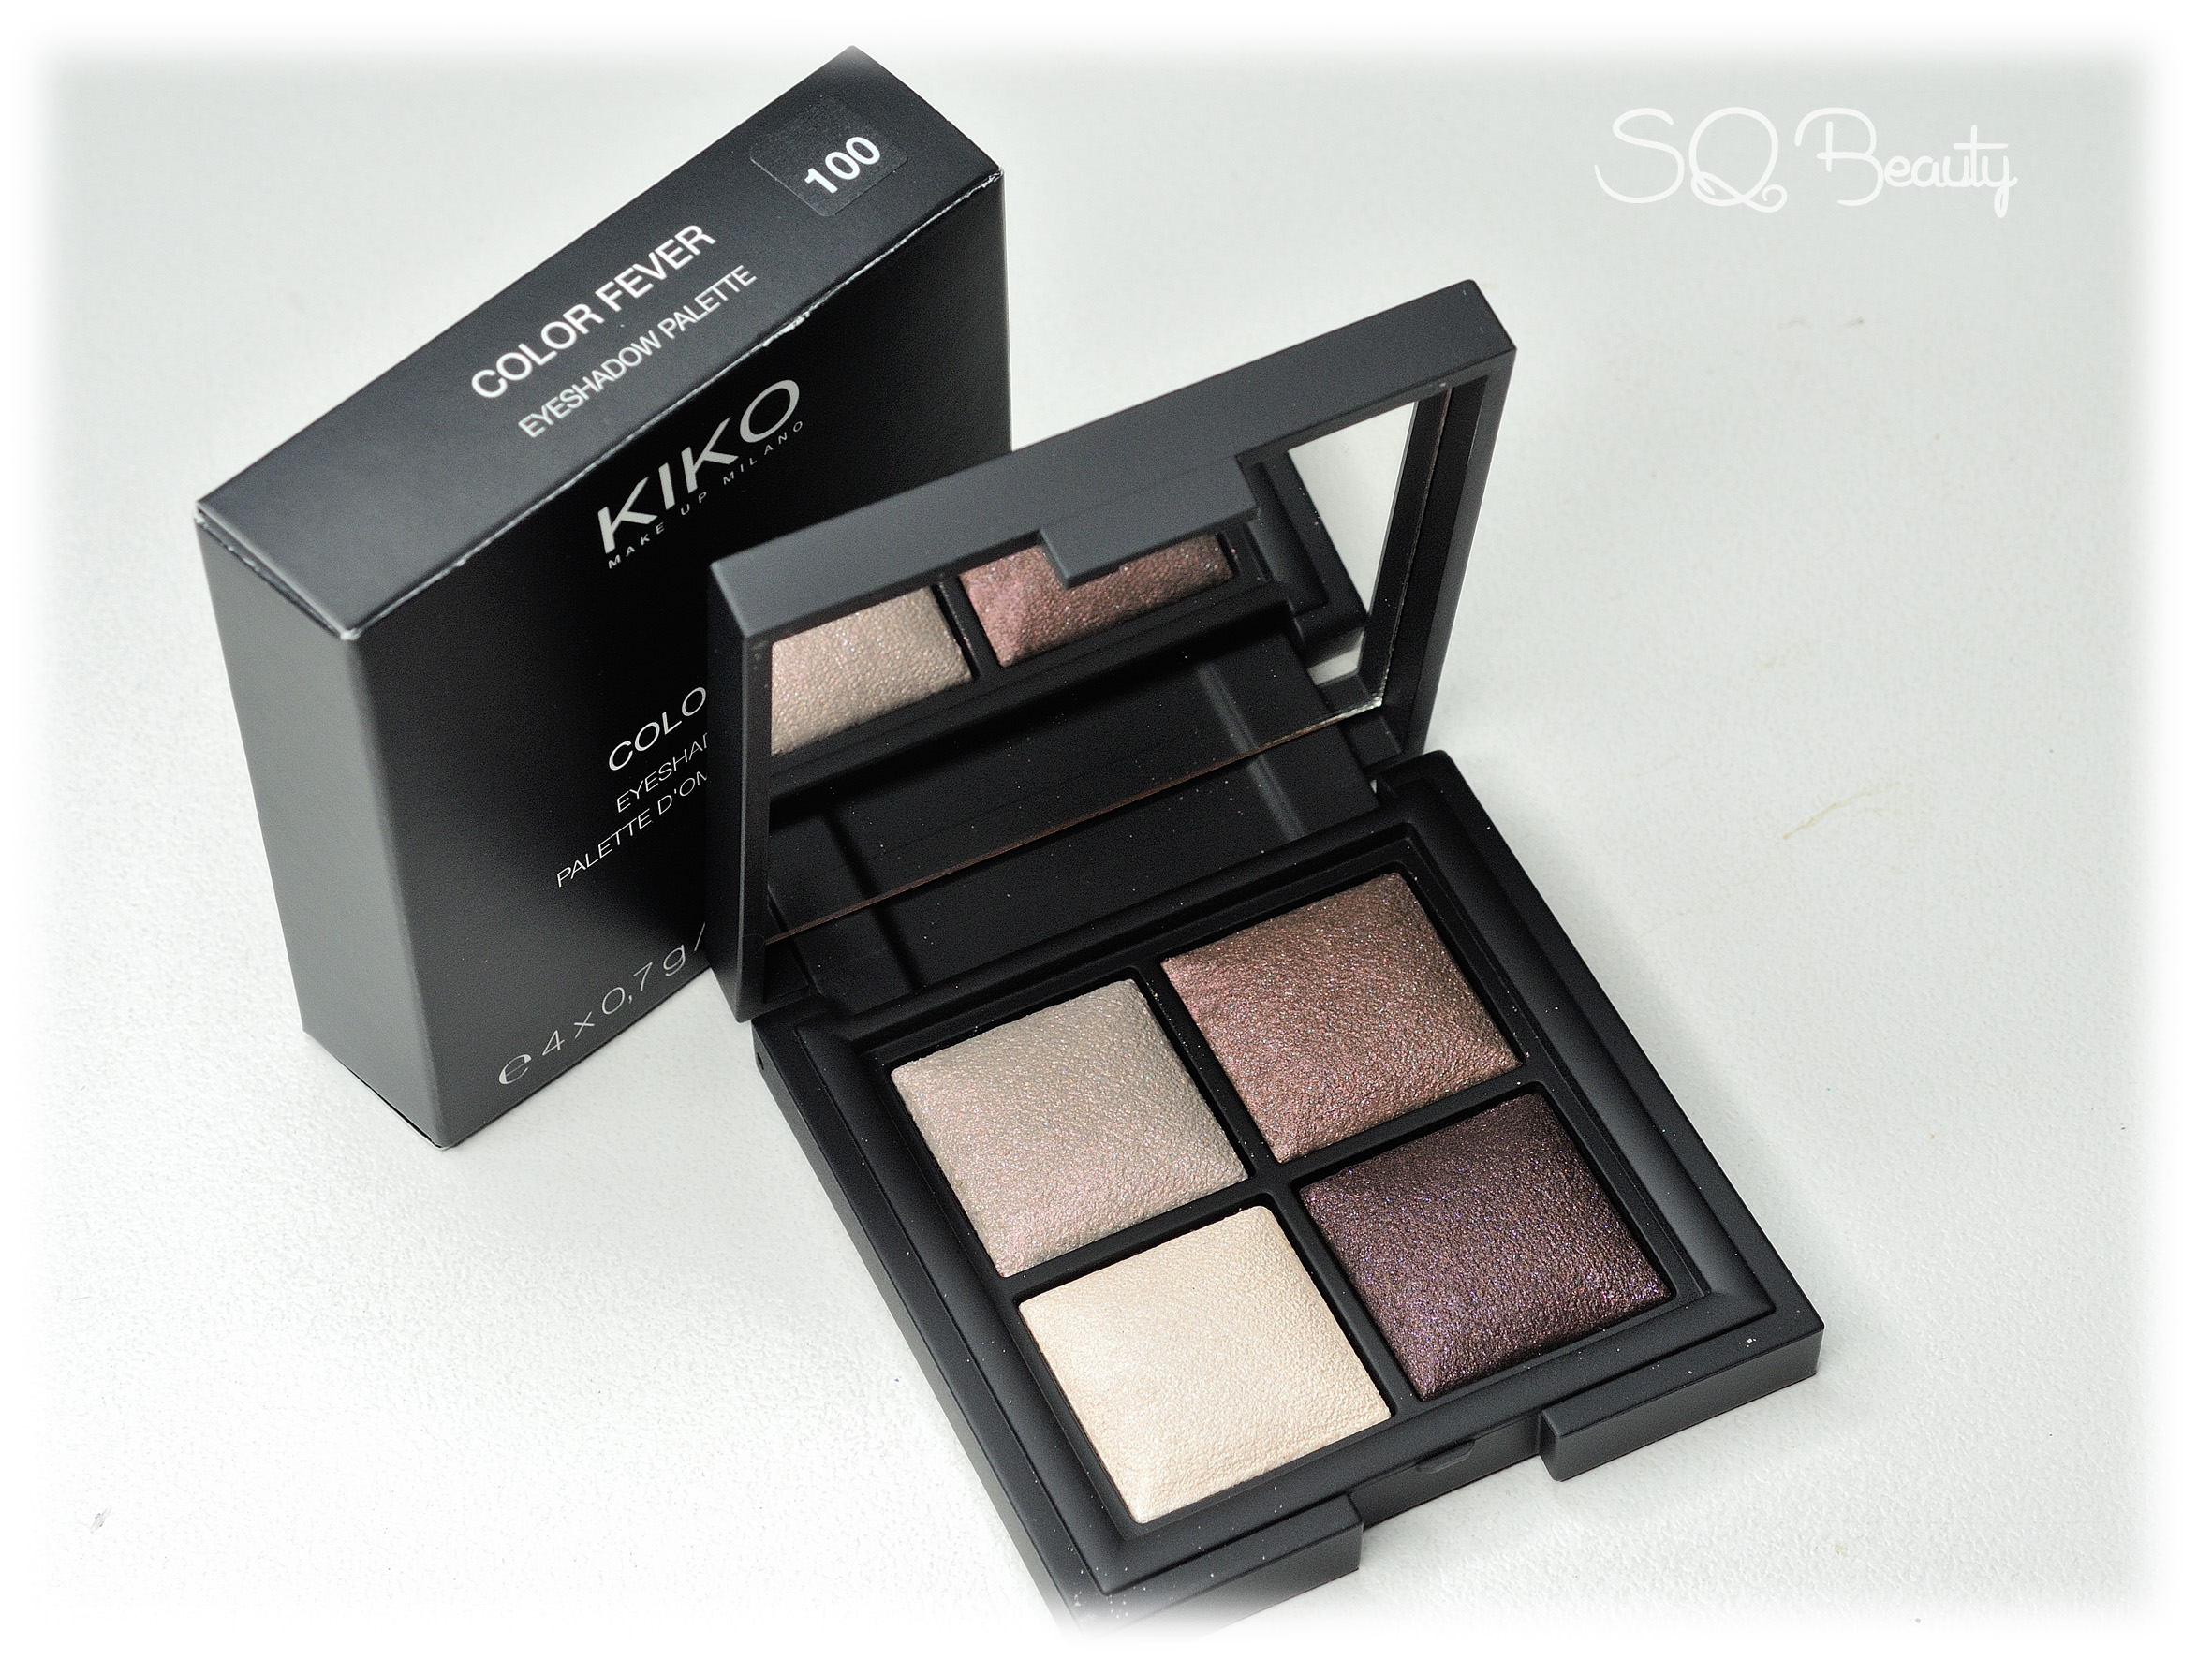 Colección Bad Girl de Kiko Makeup Silvia Quiros SQ Beauty